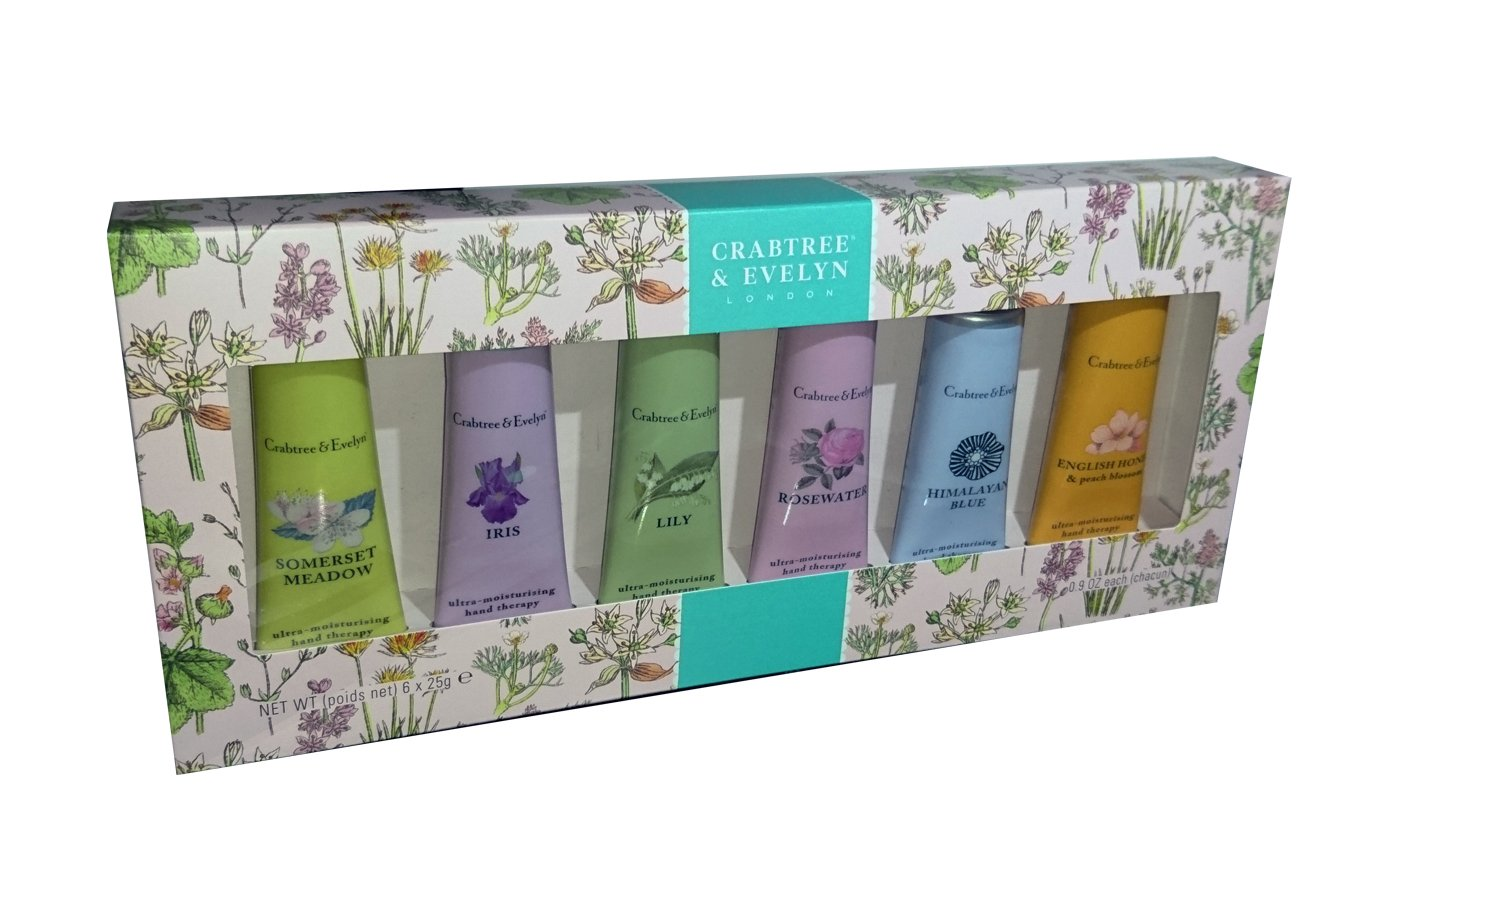 Crabtree & Evelyn Hand Therapy Collection Gift pack: Amazon.co.uk: Beauty